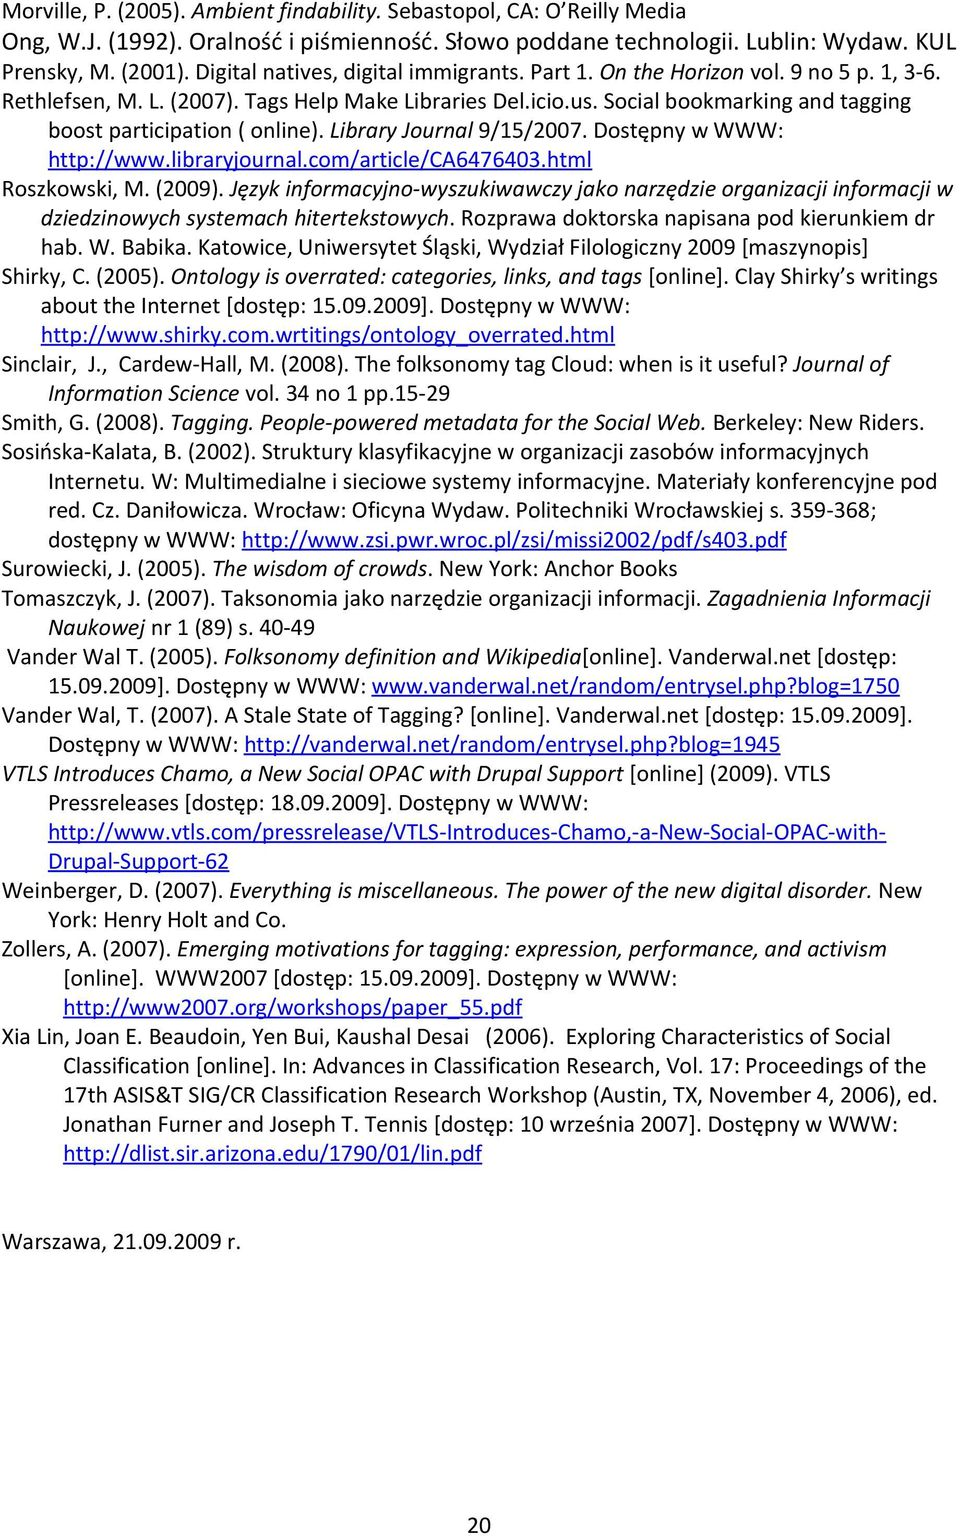 Social bookmarking and tagging boost participation ( online). Library Journal 9/15/2007. Dostępny w WWW: http://www.libraryjournal.com/article/ca6476403.html Roszkowski, M. (2009).